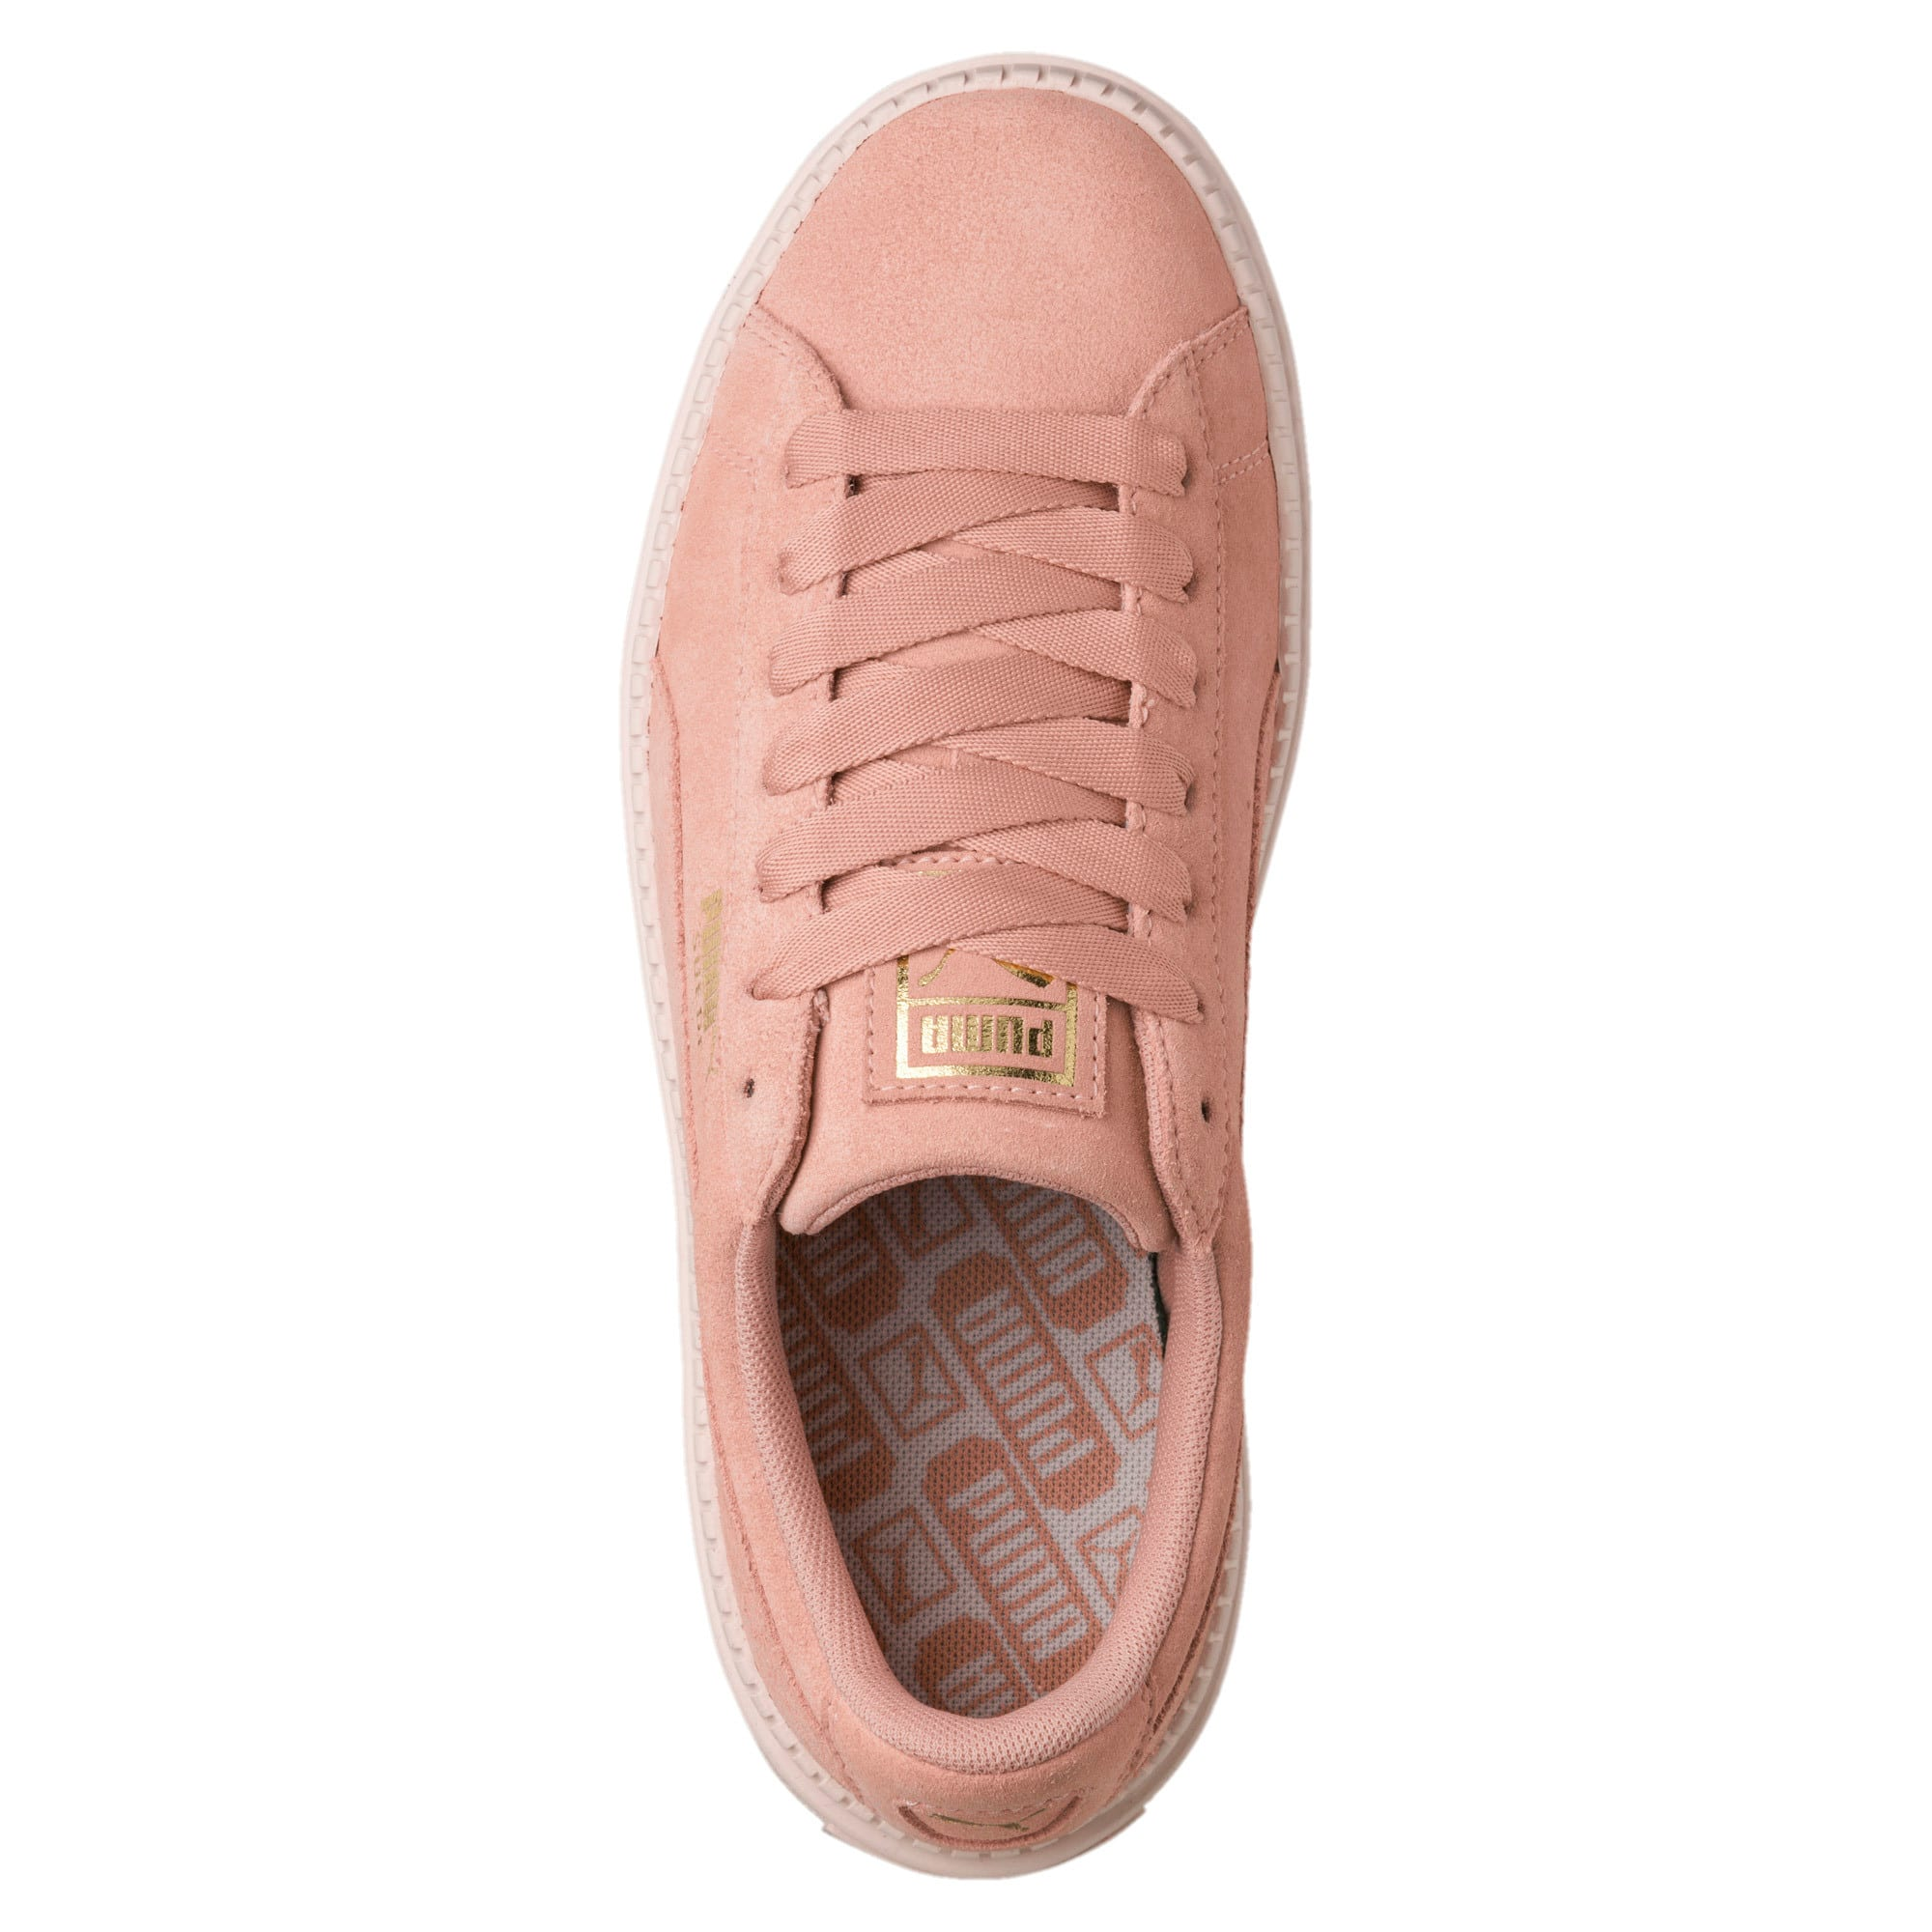 Thumbnail 4 of Platform Trace Women's Trainers, Peach Beige-Pearl, medium-IND